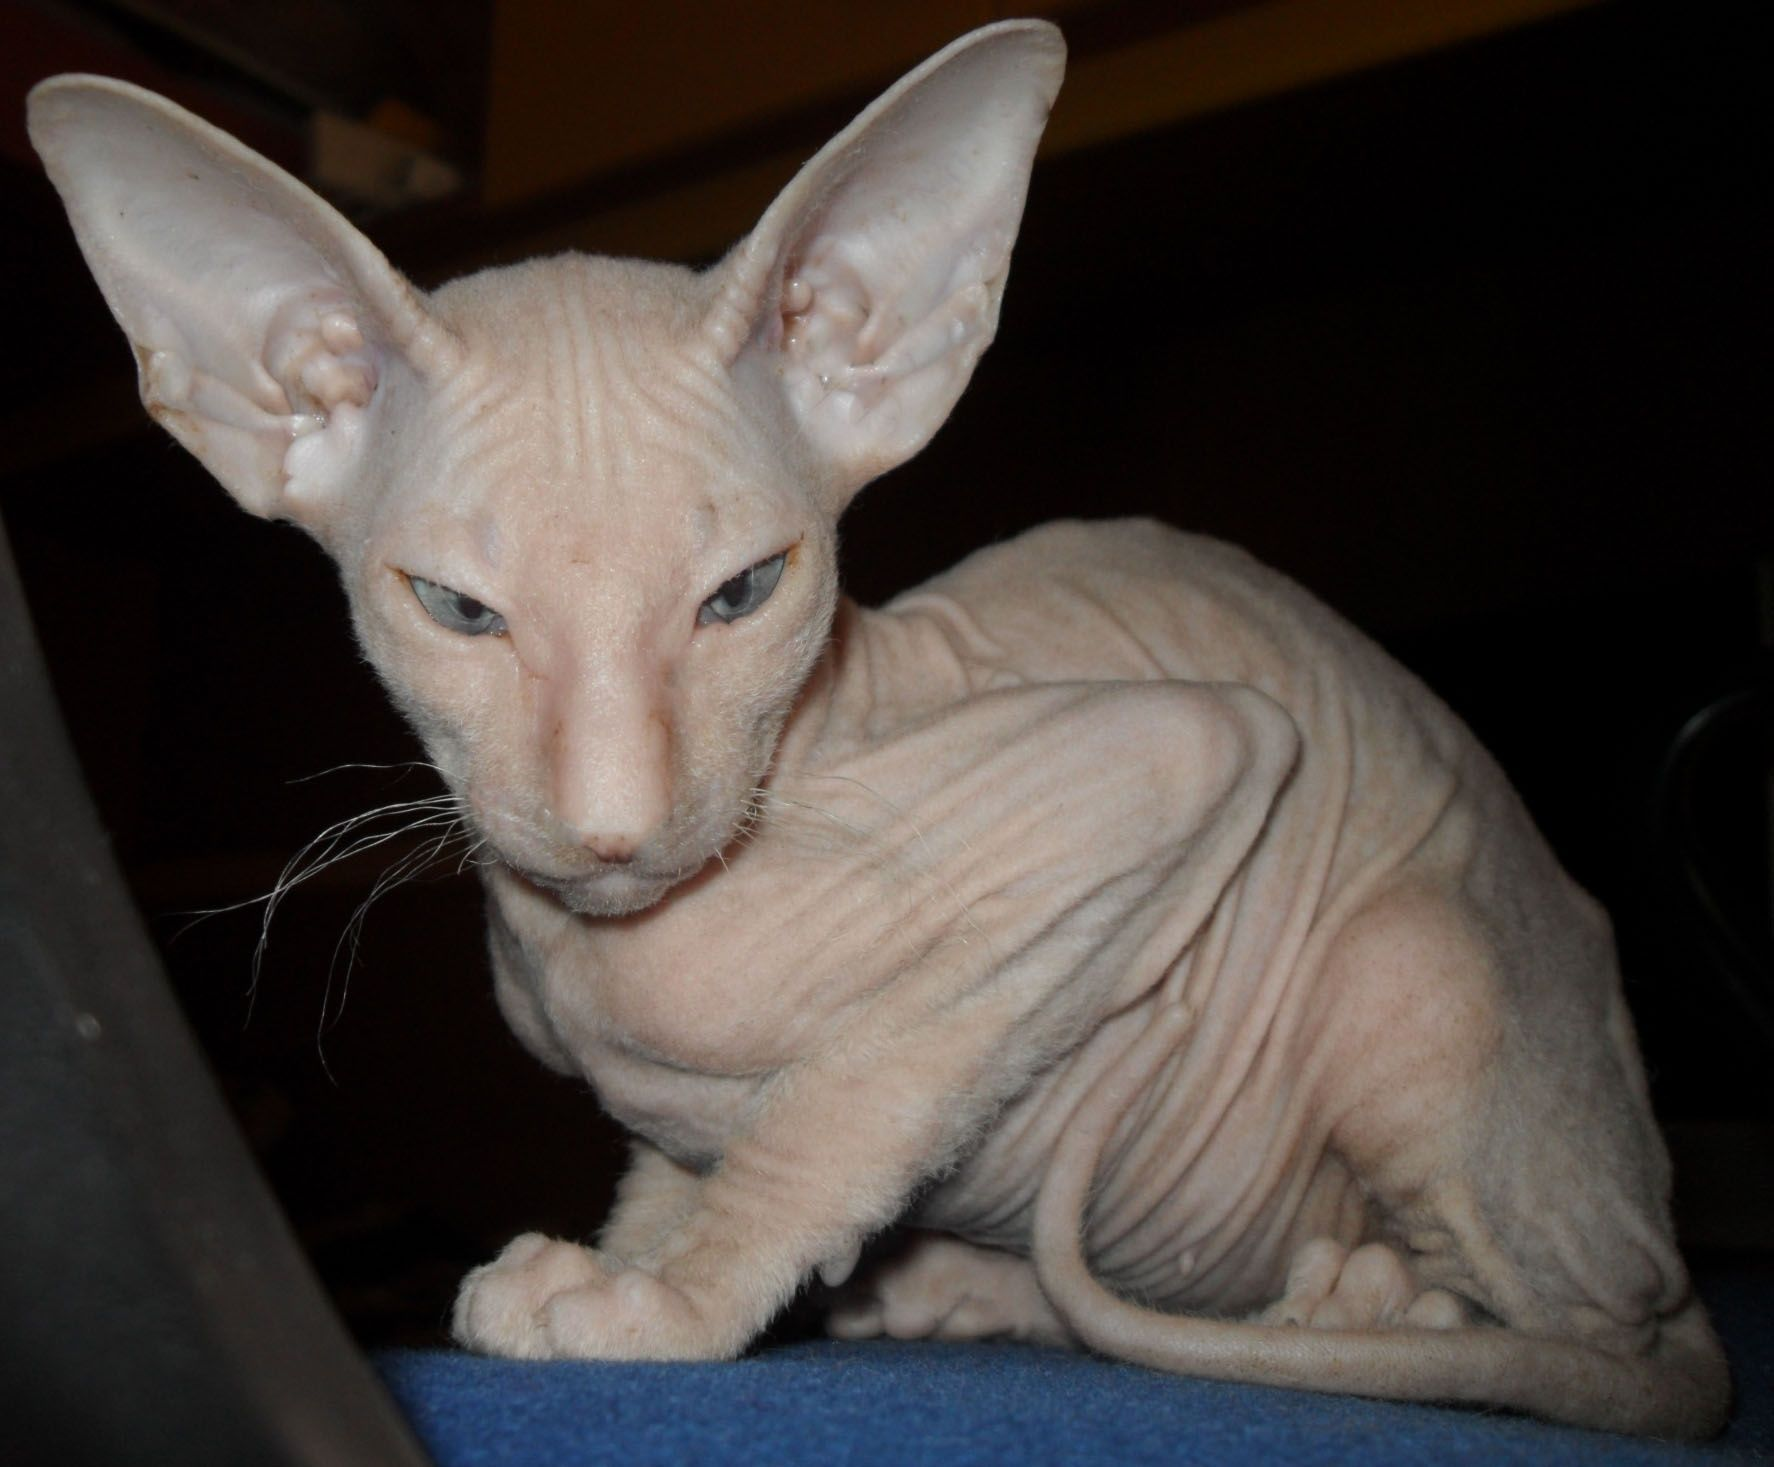 1 Beautiful Canadian Sphynx Kitten For Sale Hornchurch Essex Pets4homes Sphynx Kittens For Sale Kitten For Sale Cat Training